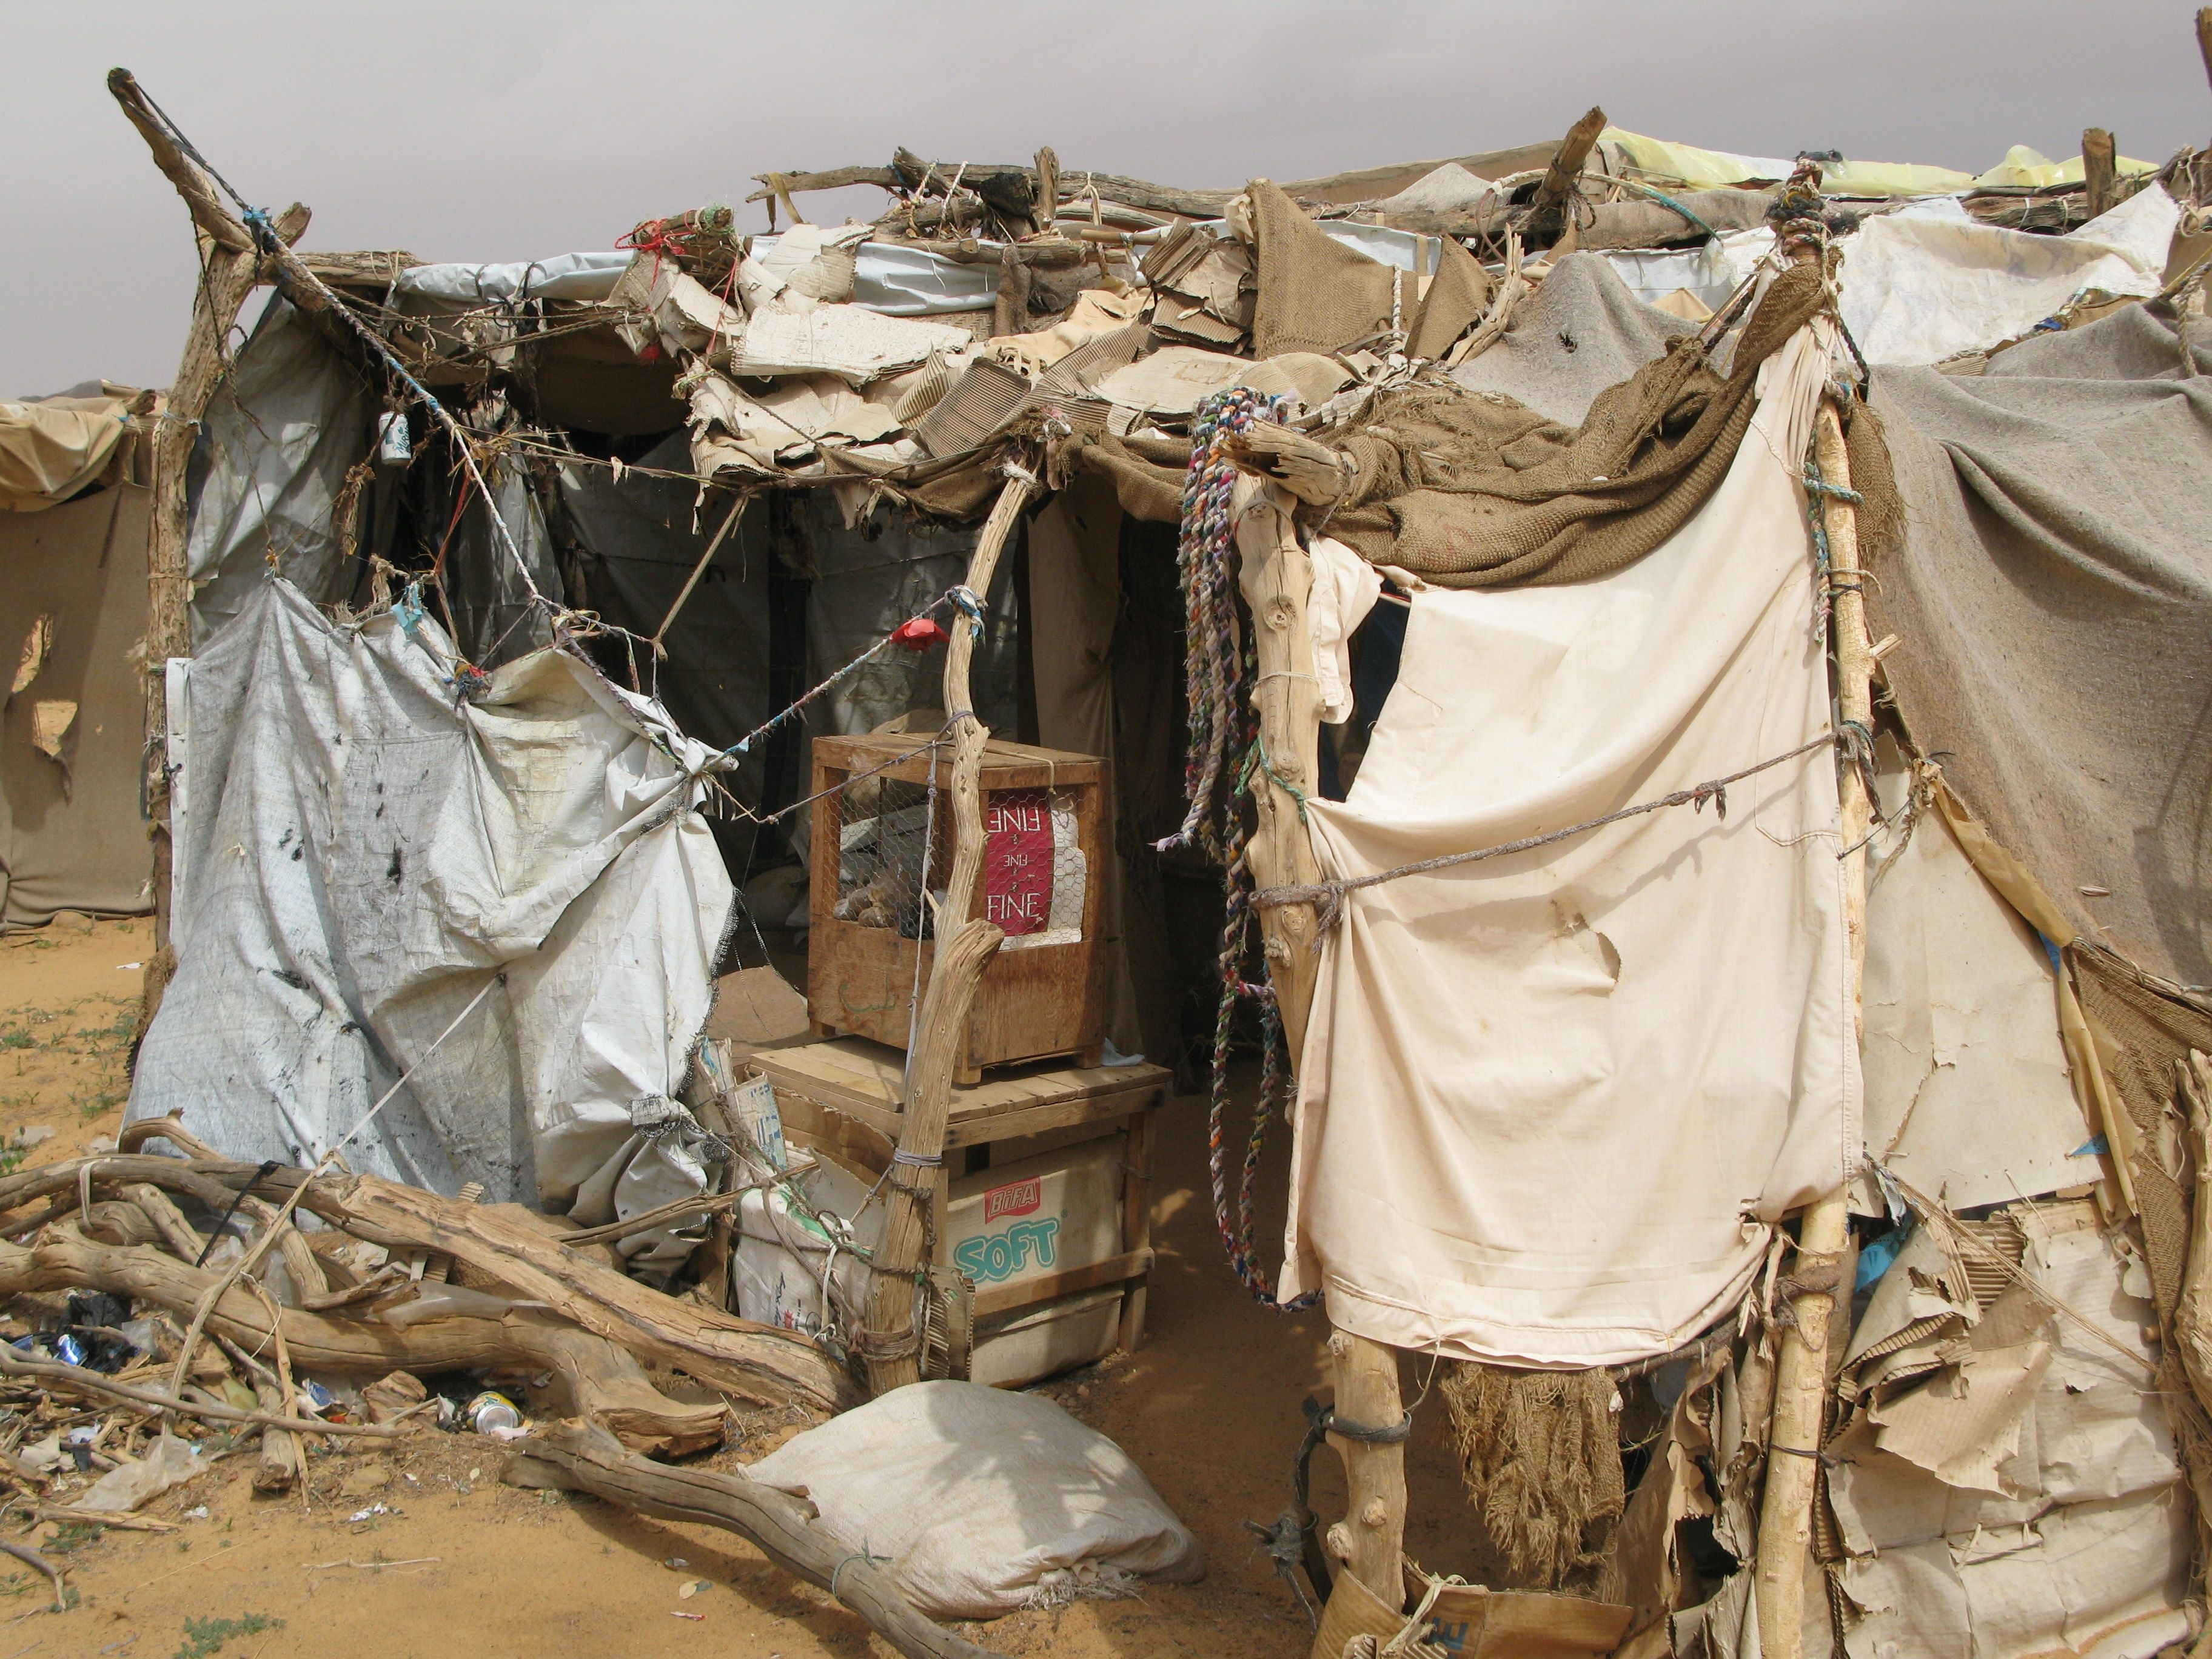 Temporary housing in the Oure Cassoni refugee camp in Chad